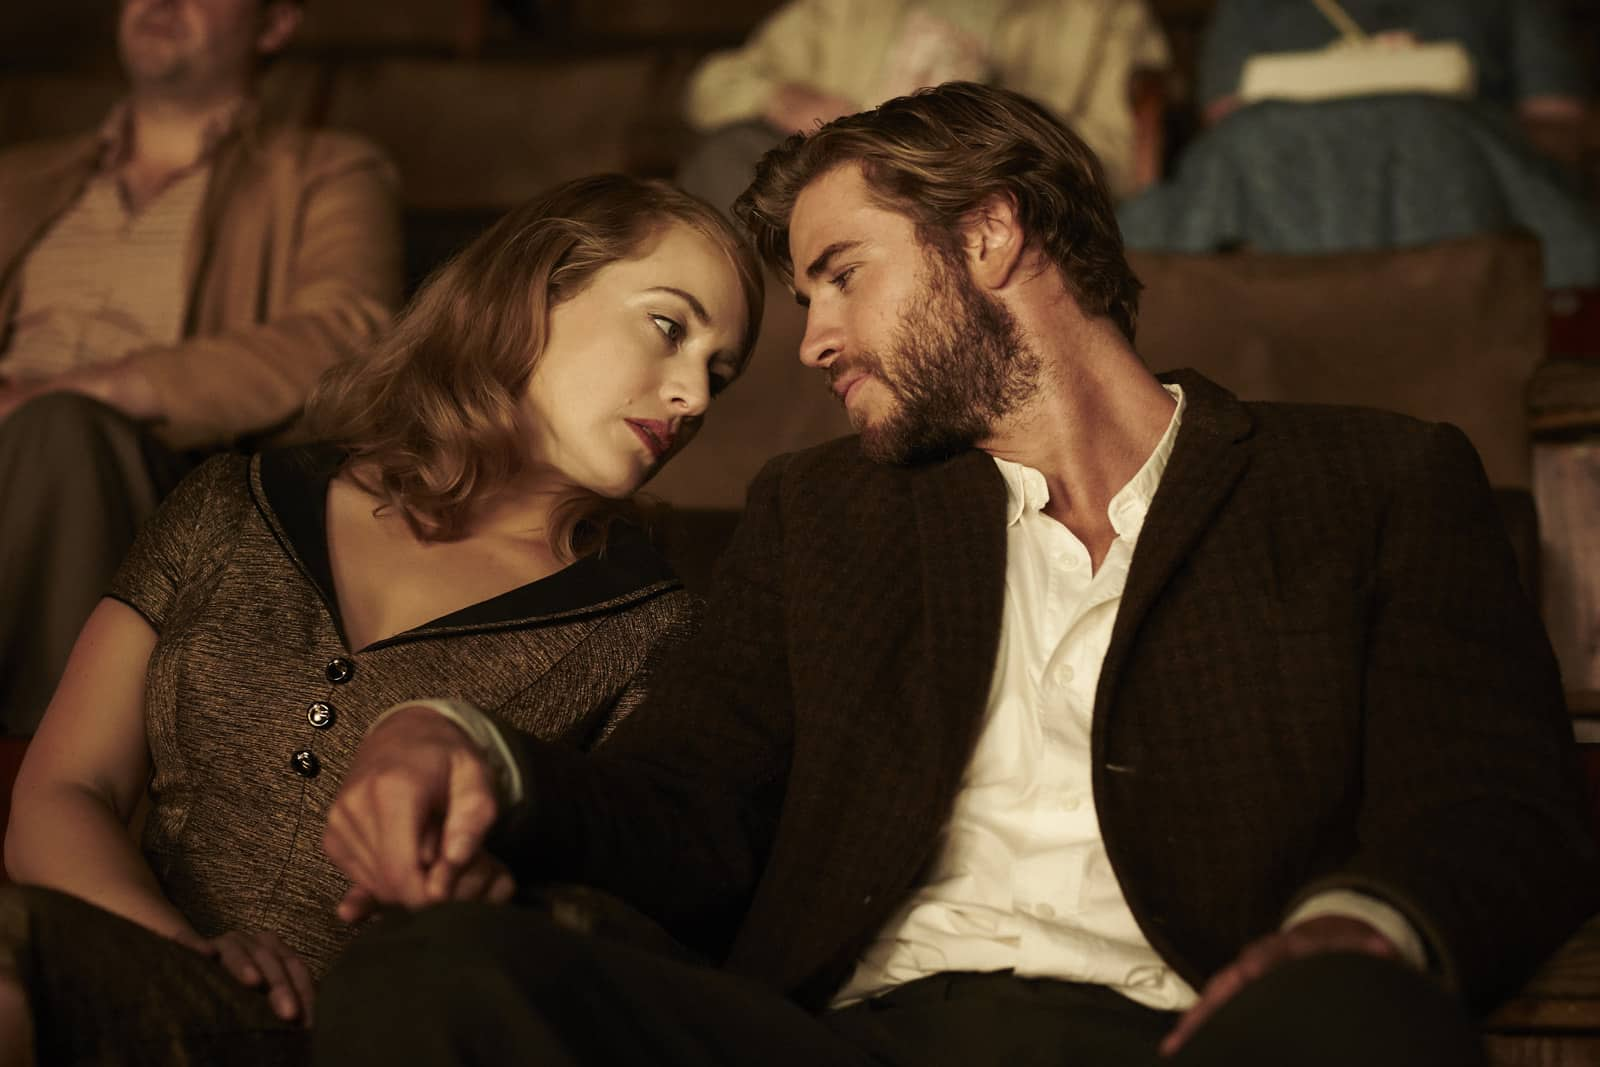 the-dressmaker kate-winslet-liam-hemsworth